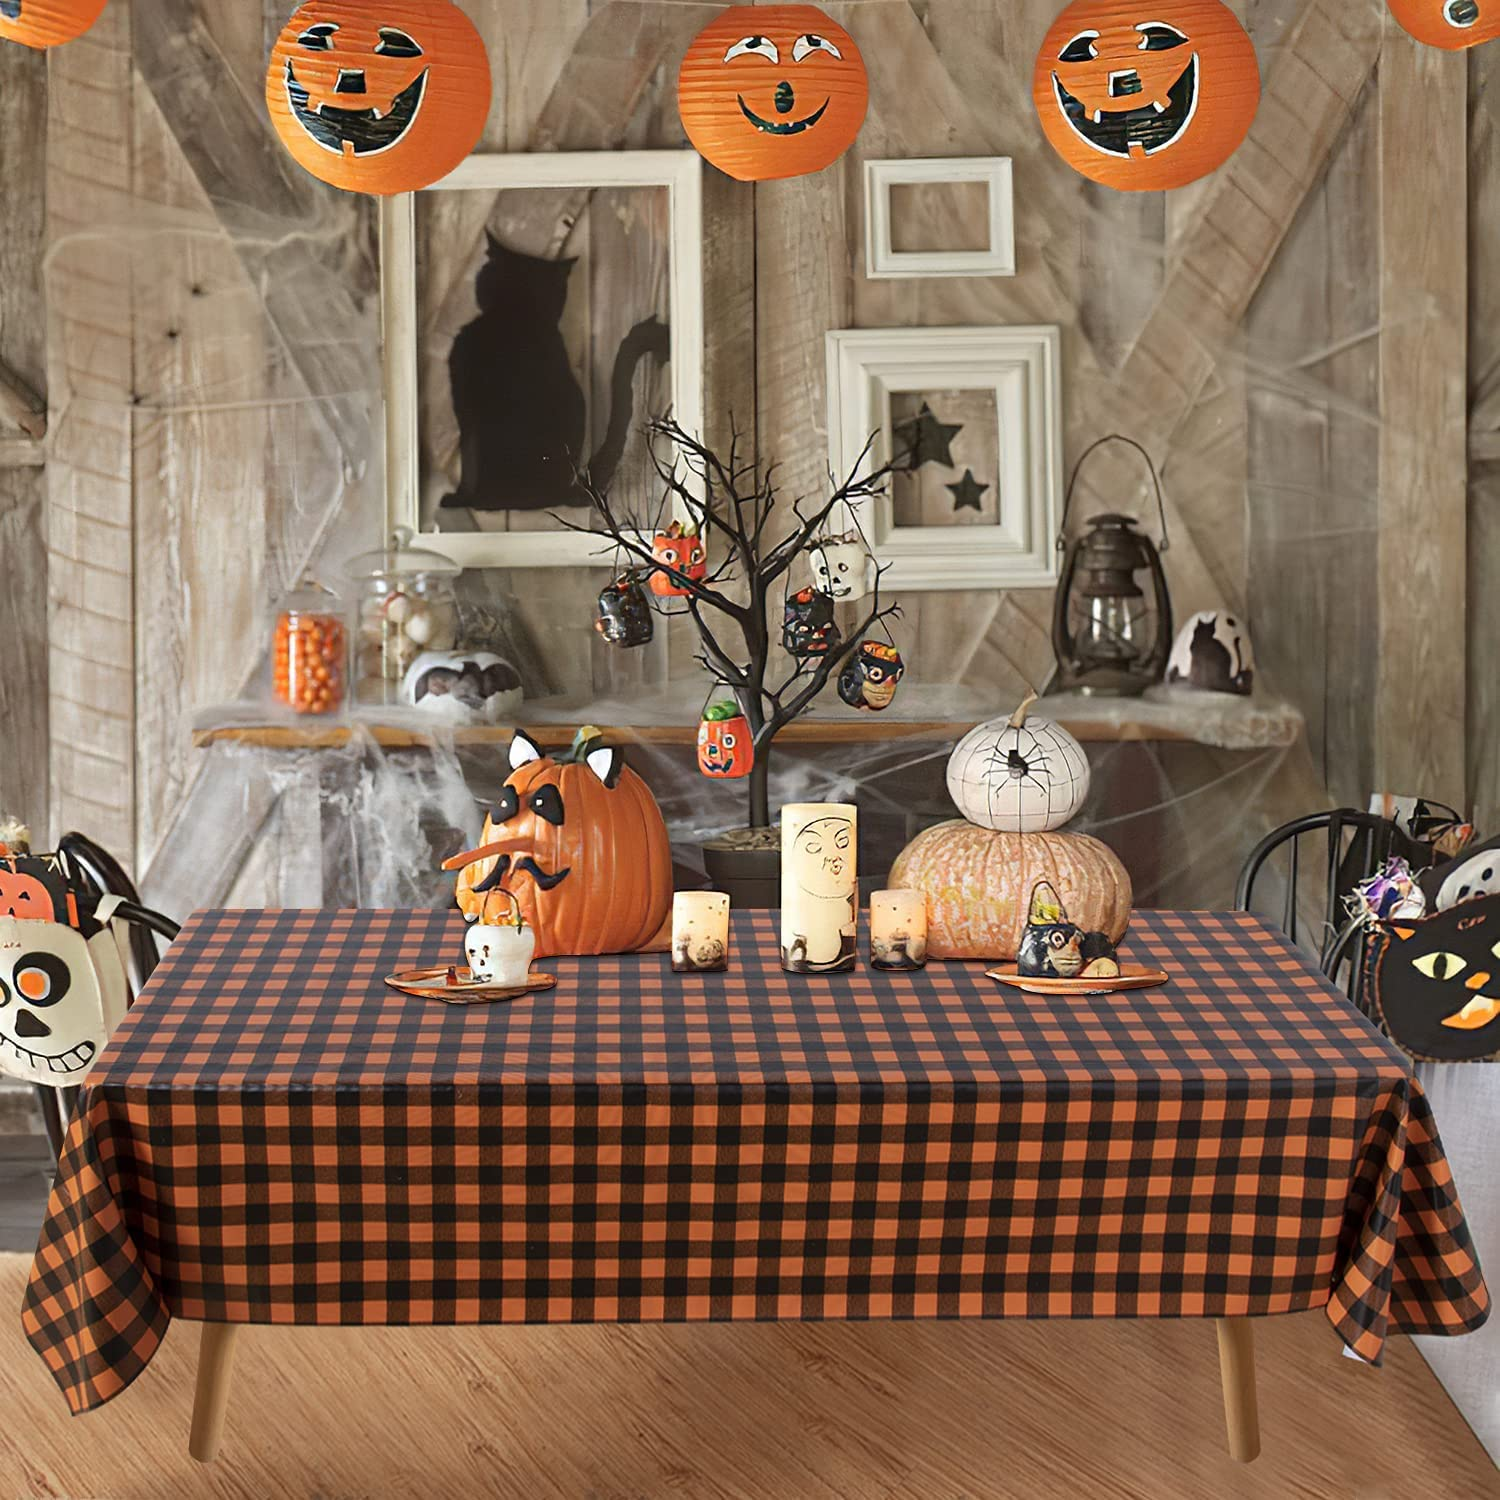 Obstal Halloween 100% Waterproof Vinyl Table Cloth, Oil-Proof Spill-Proof PVC Rectangle Tablecloth, Wipeable Plastic Table Cover for Outdoor, Picnic, Camping, Orange and Black, 60x84 Inch